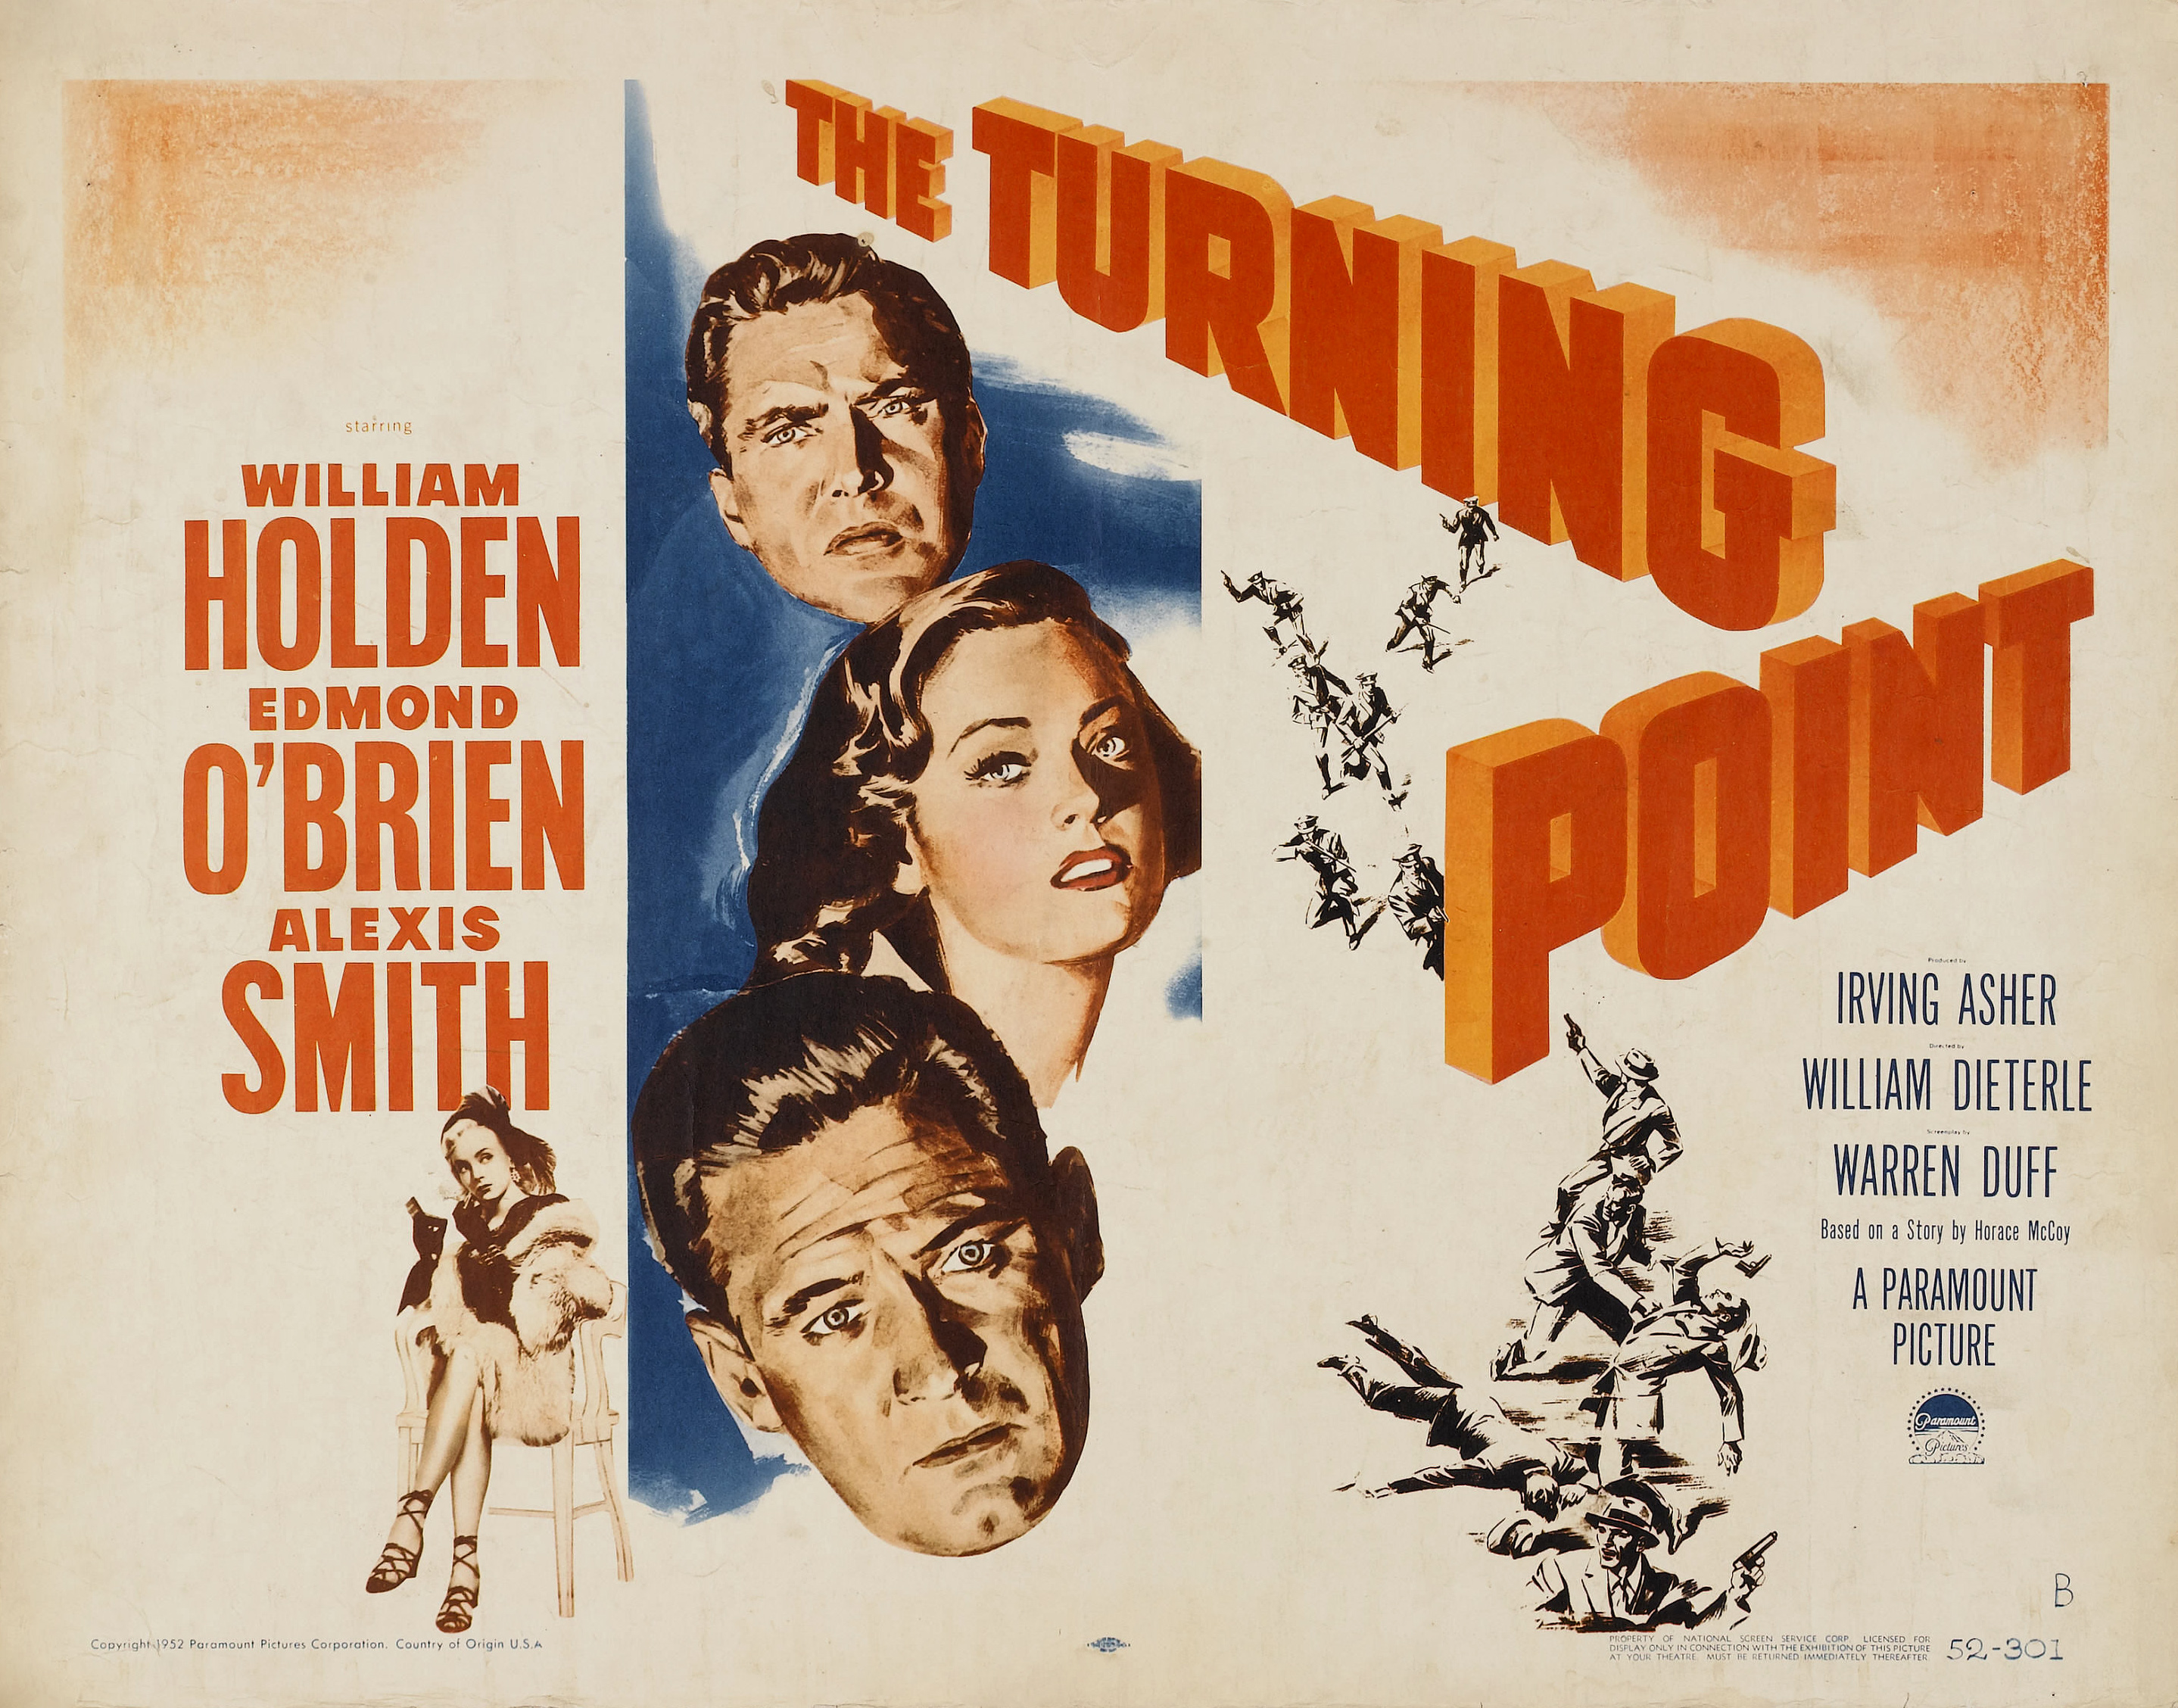 Turning Point, The (1952)